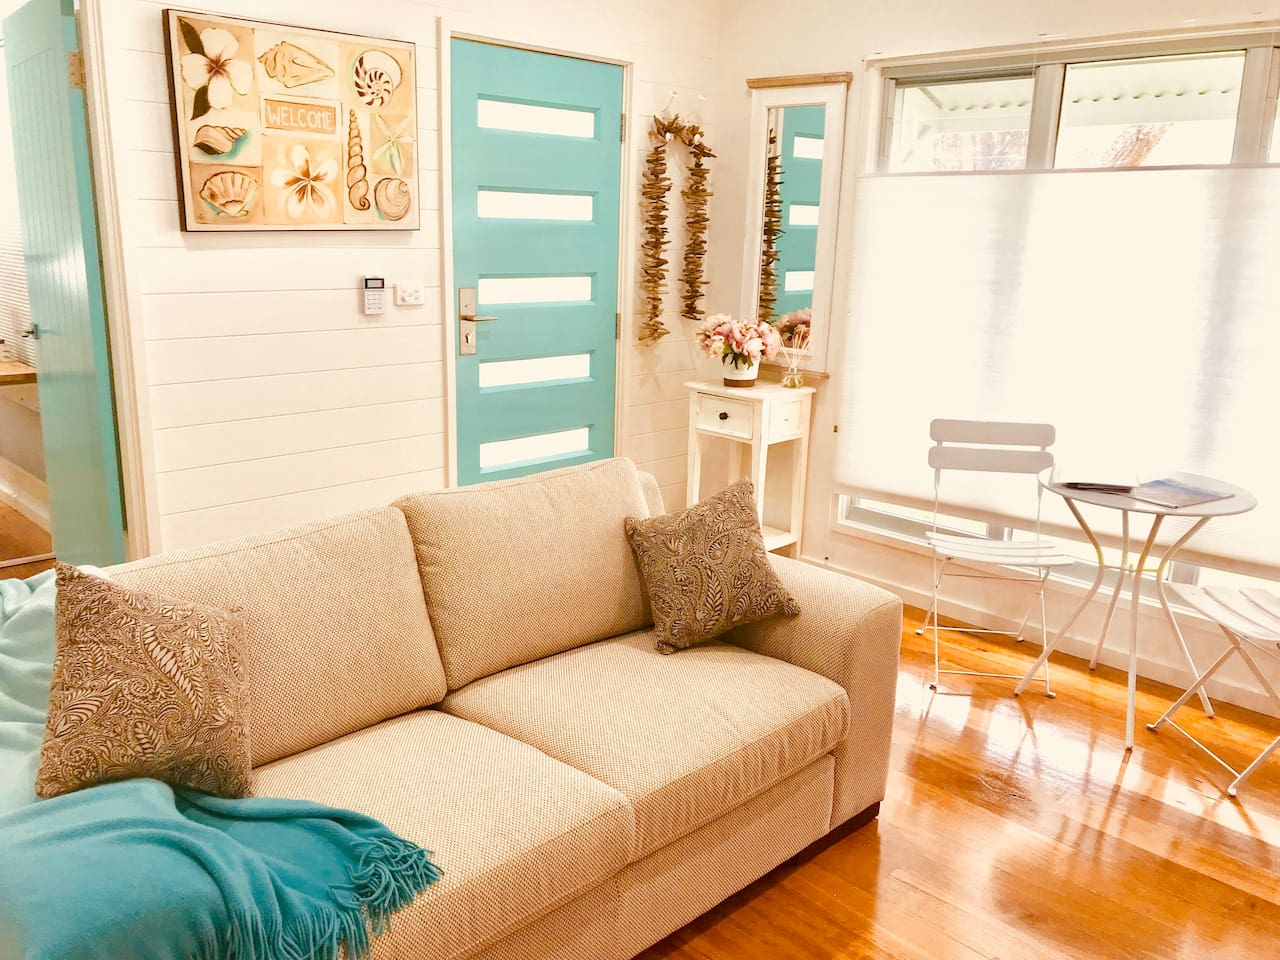 light and airy lounge room